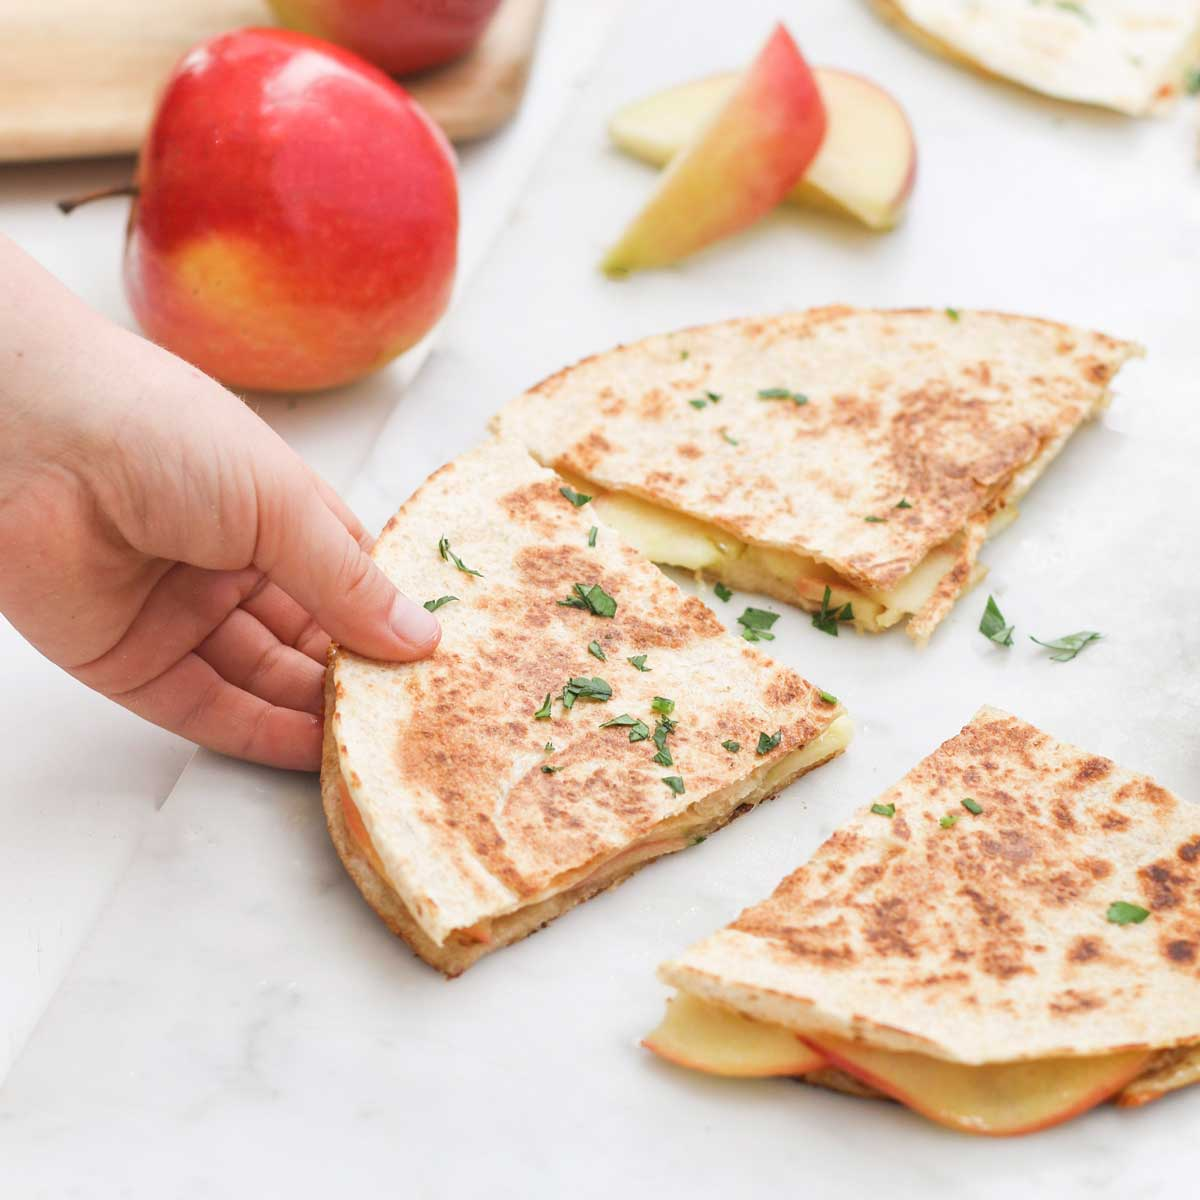 Child Grabbing Apple and Cheese Quesadilla